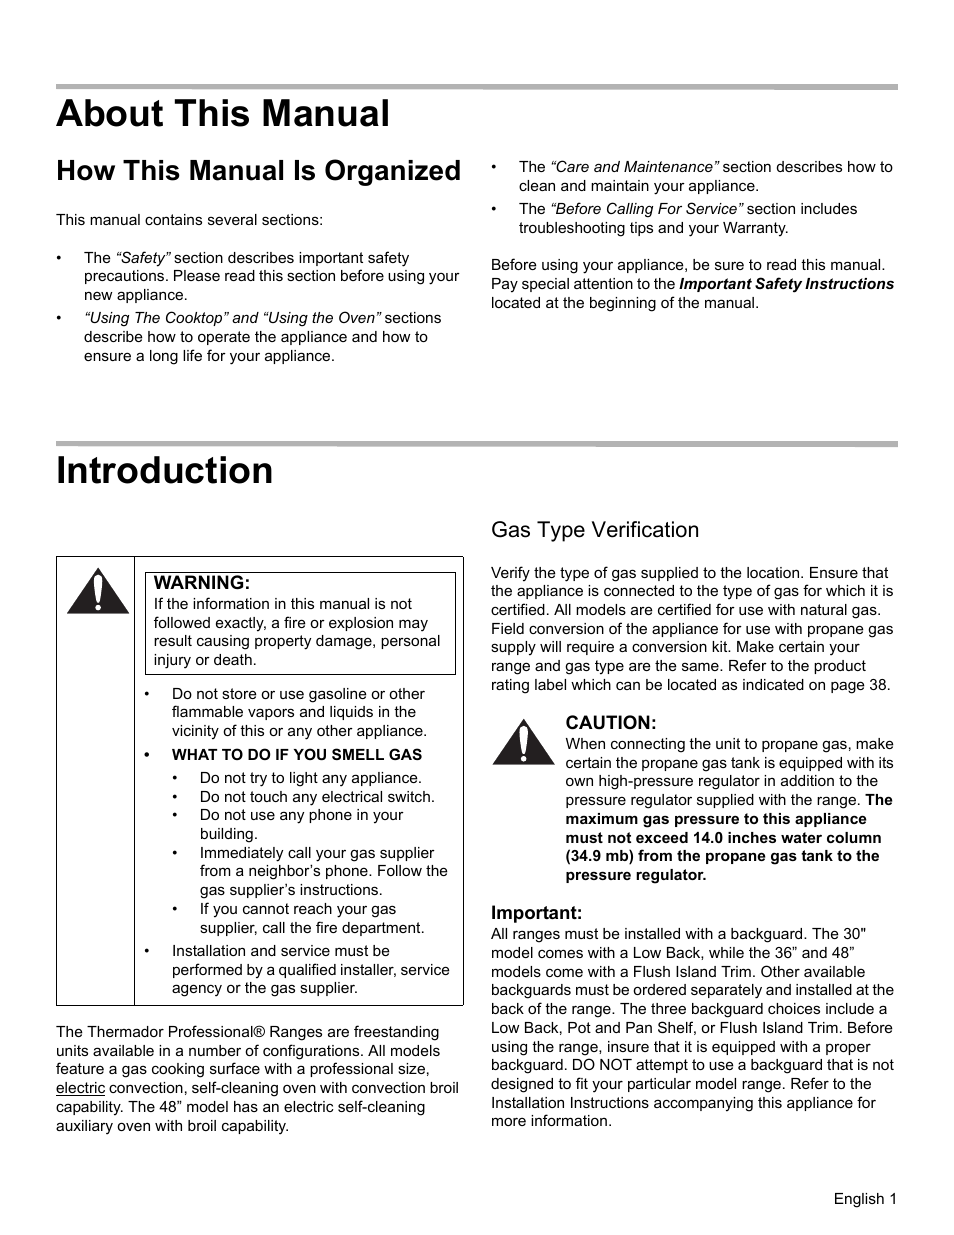 b429c9dddd5 About this manual, How this manual is organized, Introduction | Warning,  Gas type